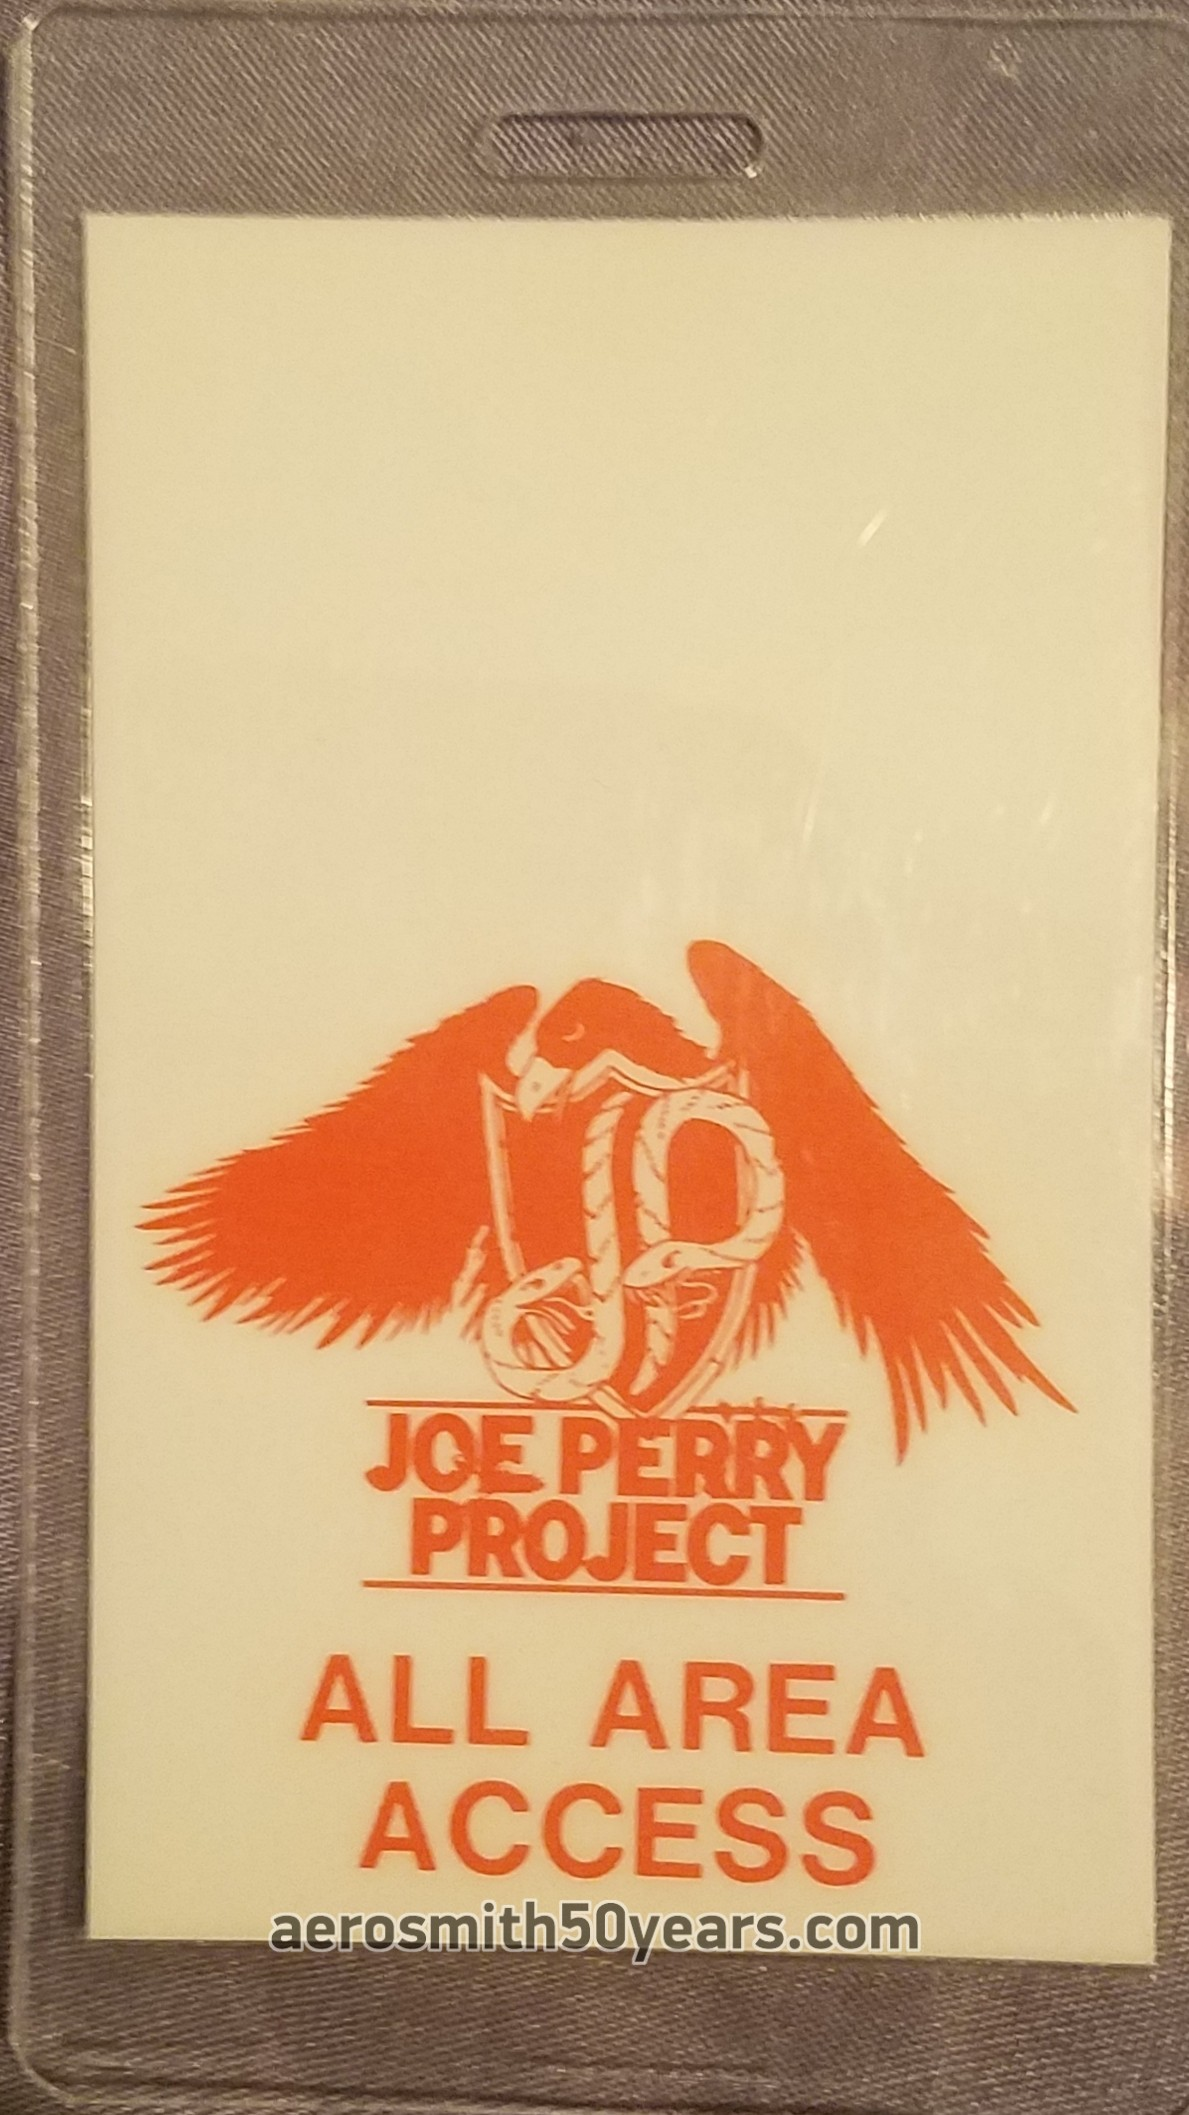 Joe Perry Project – 1983/84 Laminate All Access Pass. This was likely for a one off event as the band didn't use laminate passes I'm told.